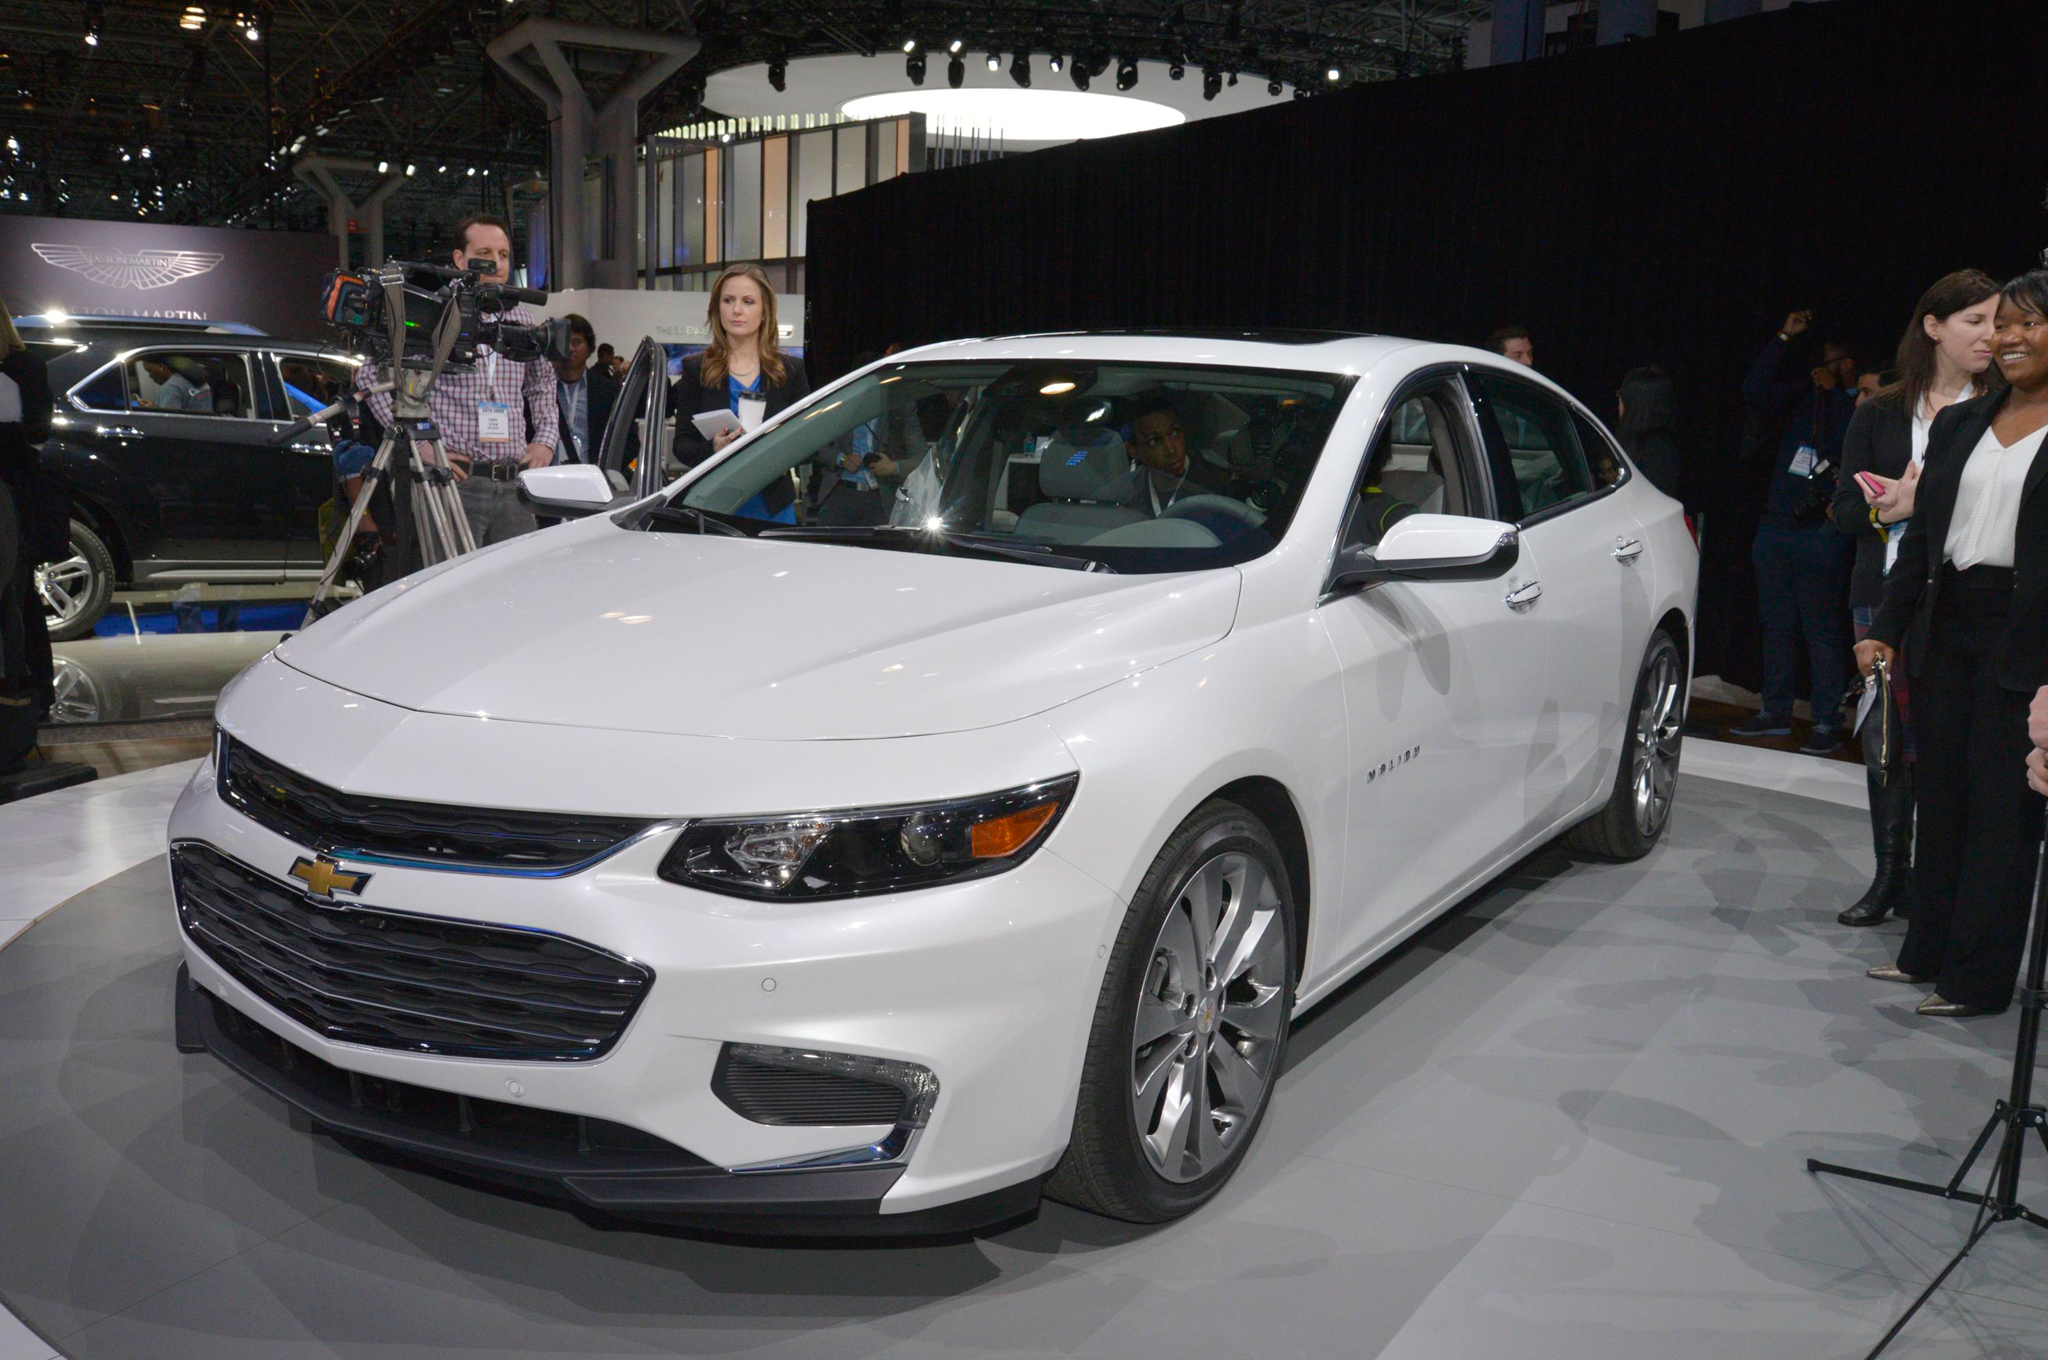 2016 Chevrolet Malibu's Teen Driver Program Ready to Snitch on Teens